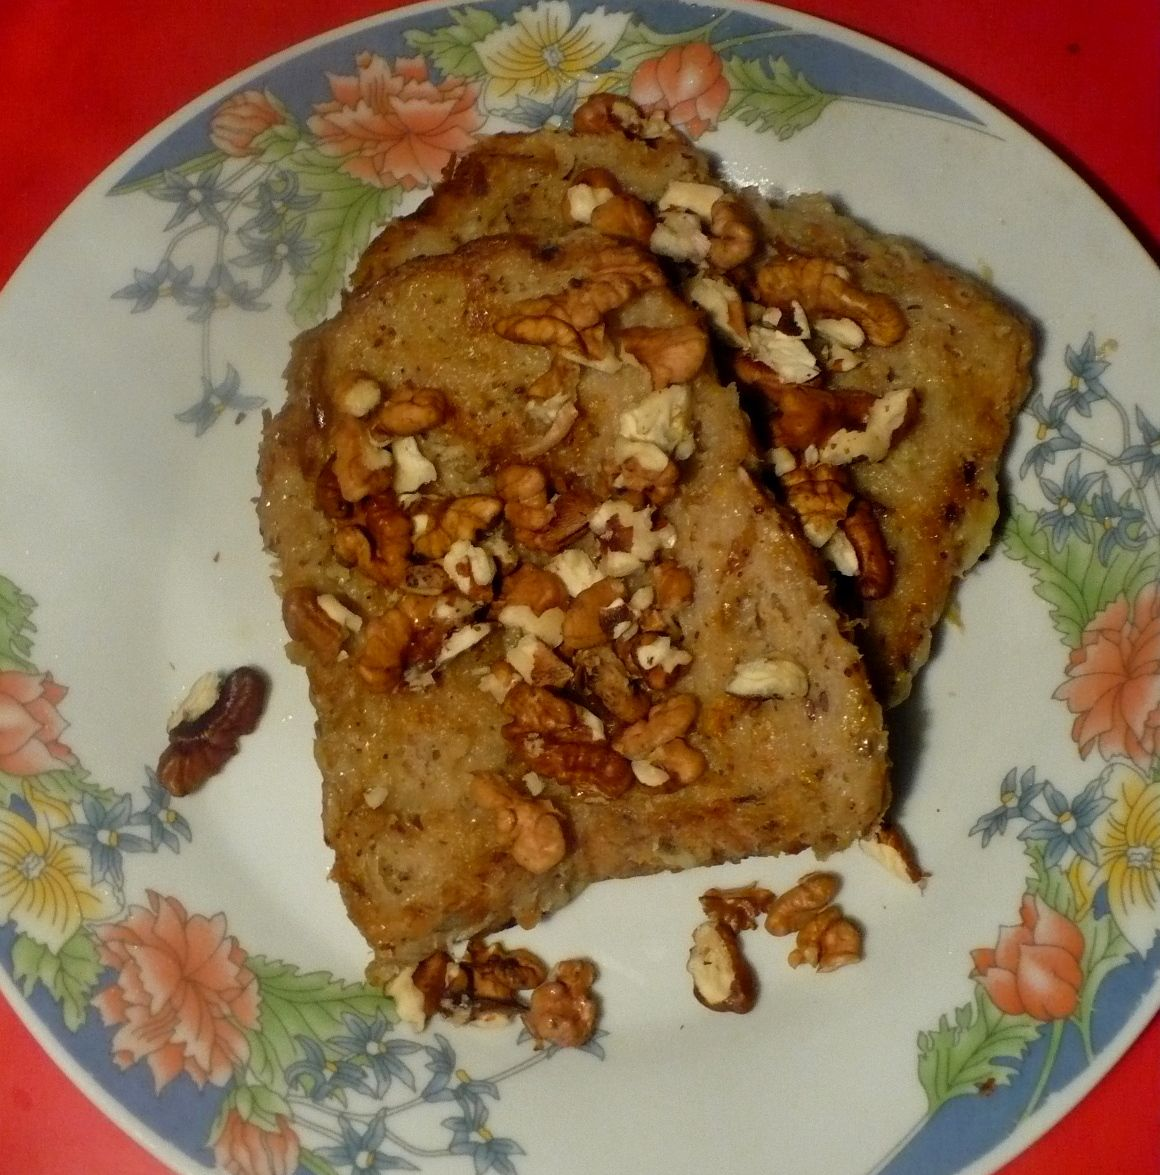 Vegan Banana French Toast Recipe Using Stale Bread